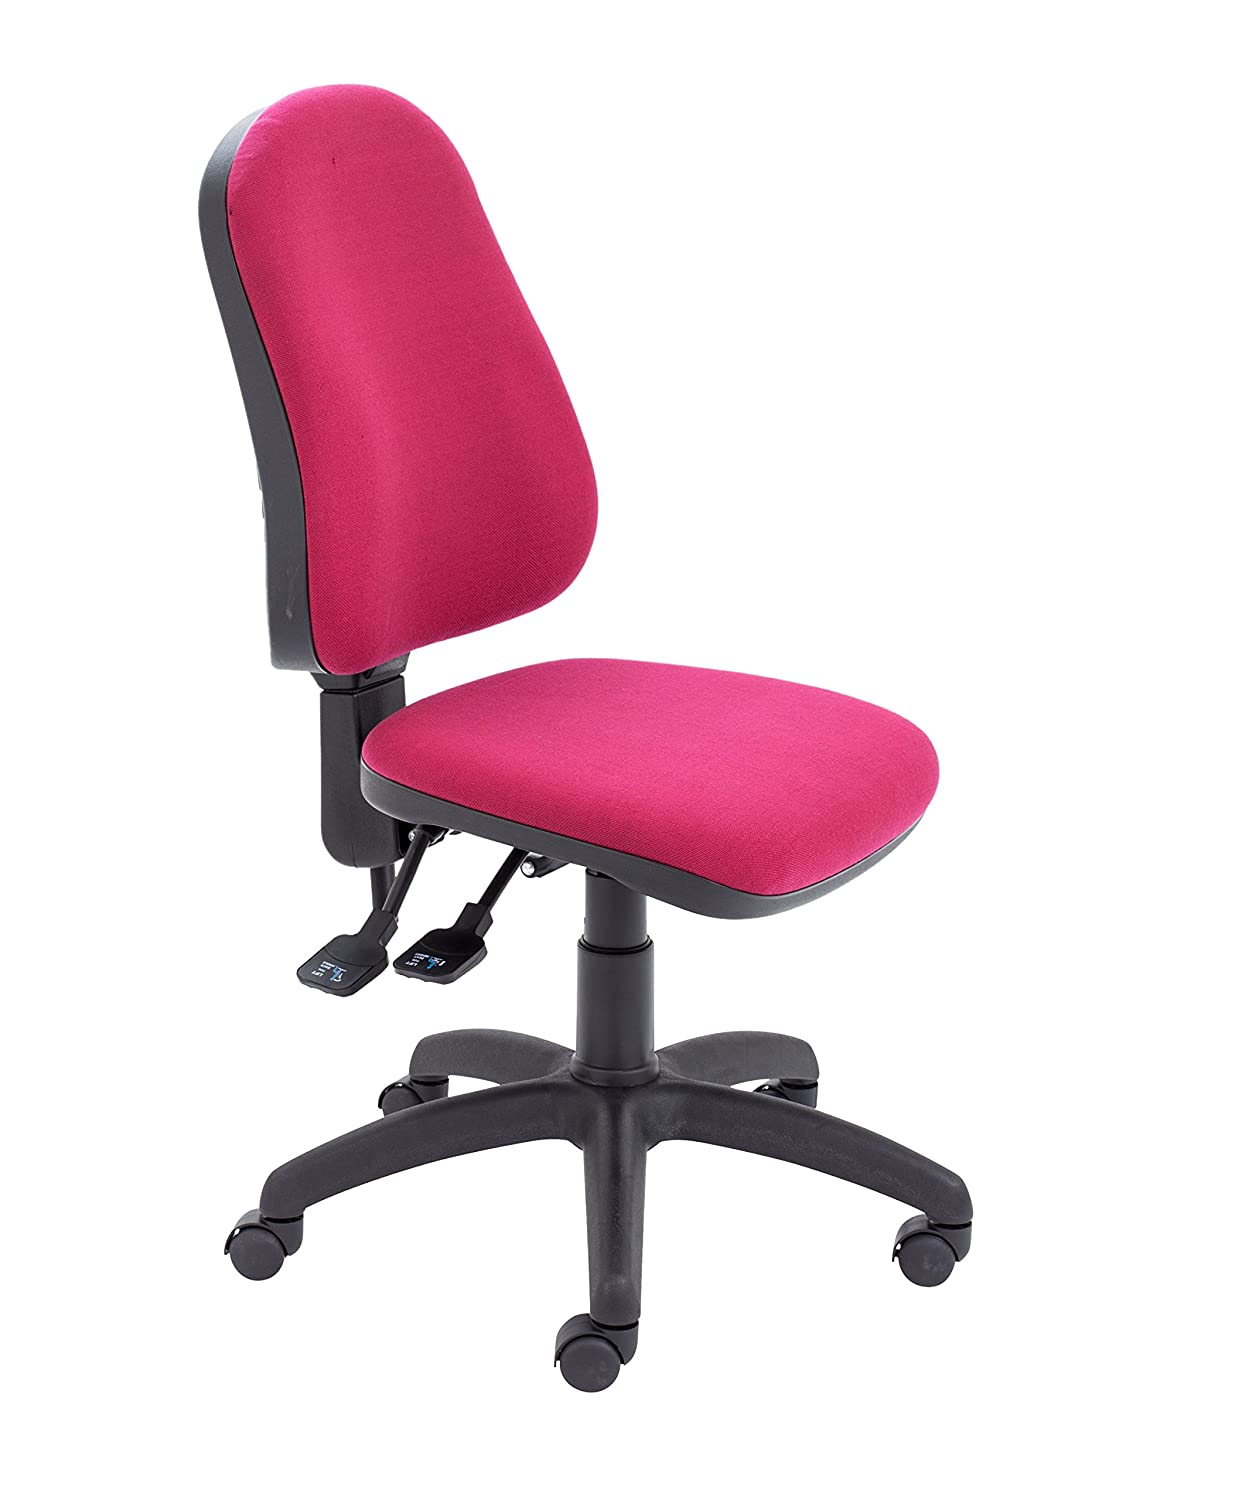 Office Hippo 3 Lever High Back Office Chair, Fabric - Royal Blue TC Group OHS0065RB